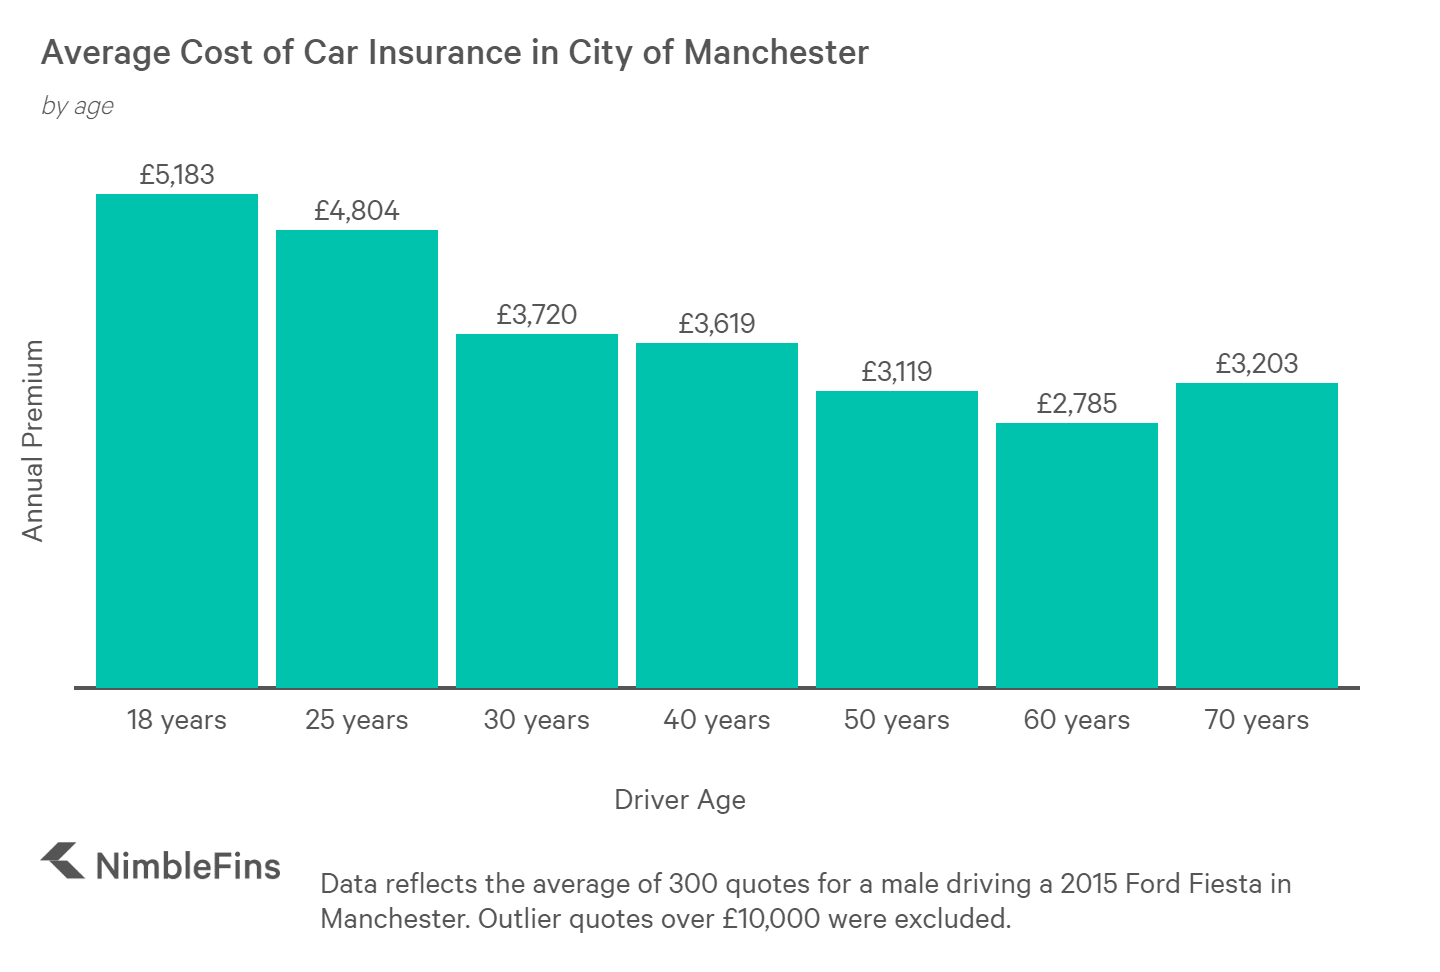 Chart showing the cost of car insurance in Manchester by Age